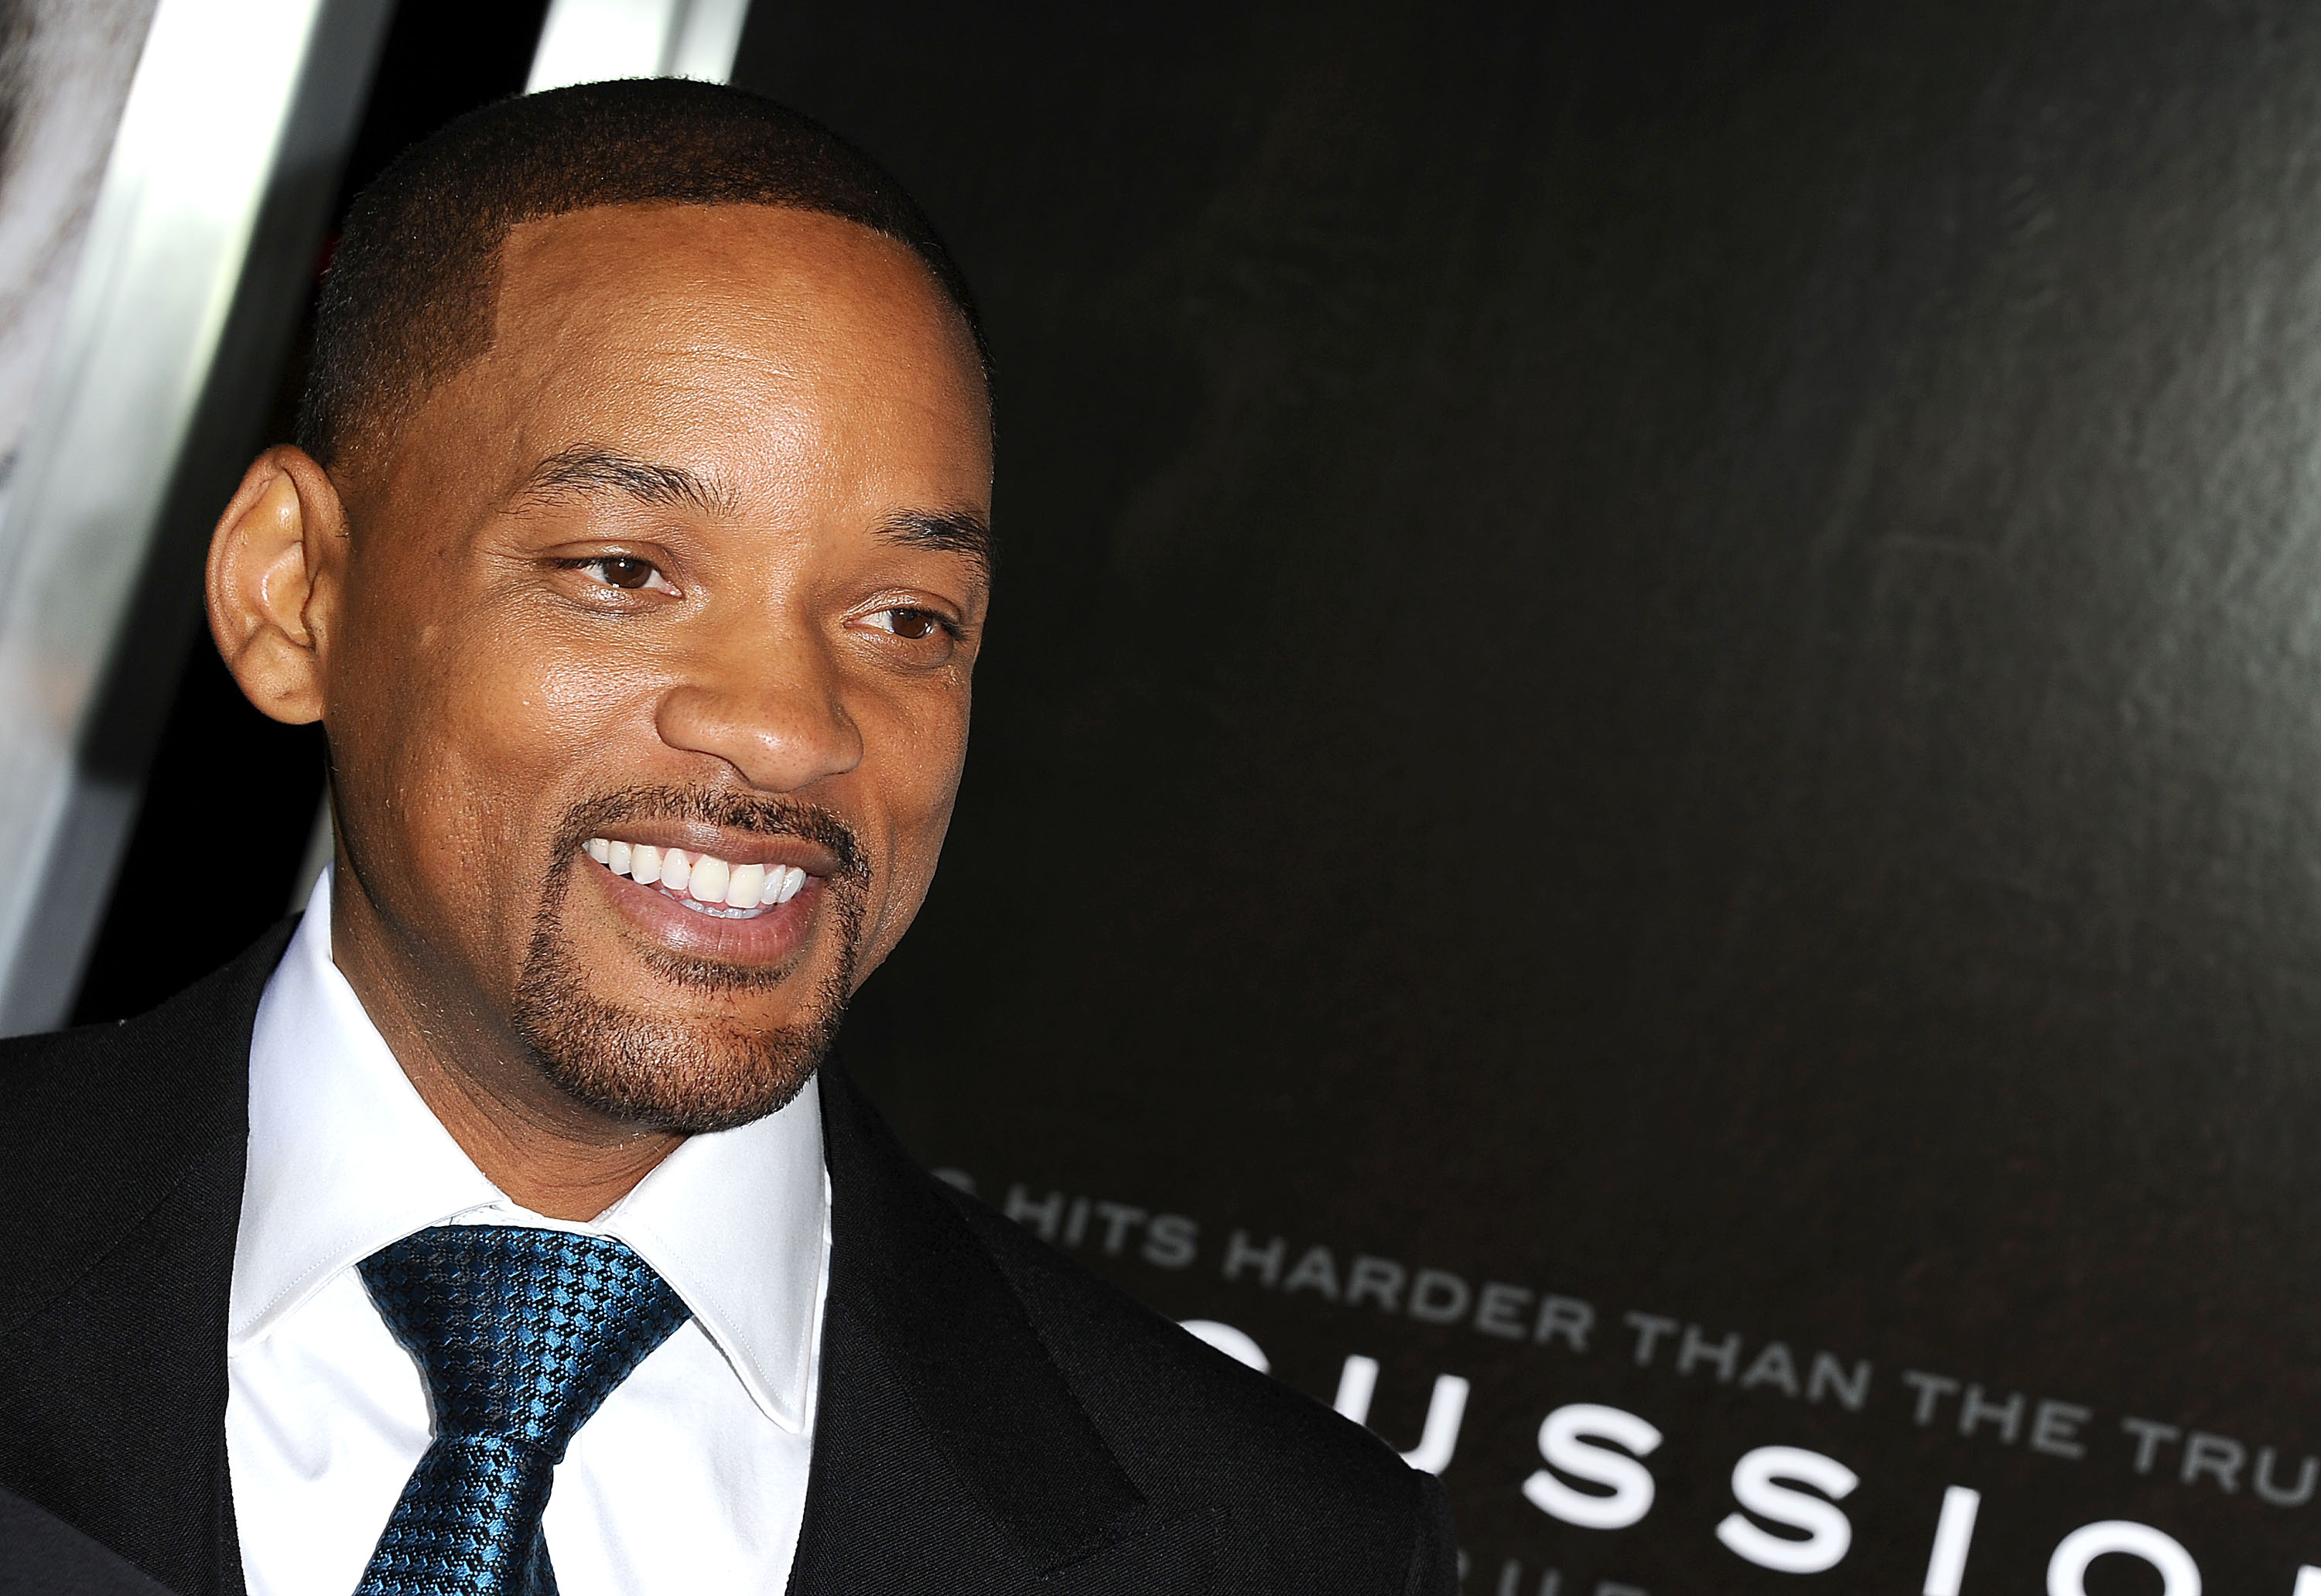 Actor Will Smith attends a screening of  Concussion  at Regency Village Theatre on November 23, 2015 in Westwood, California.